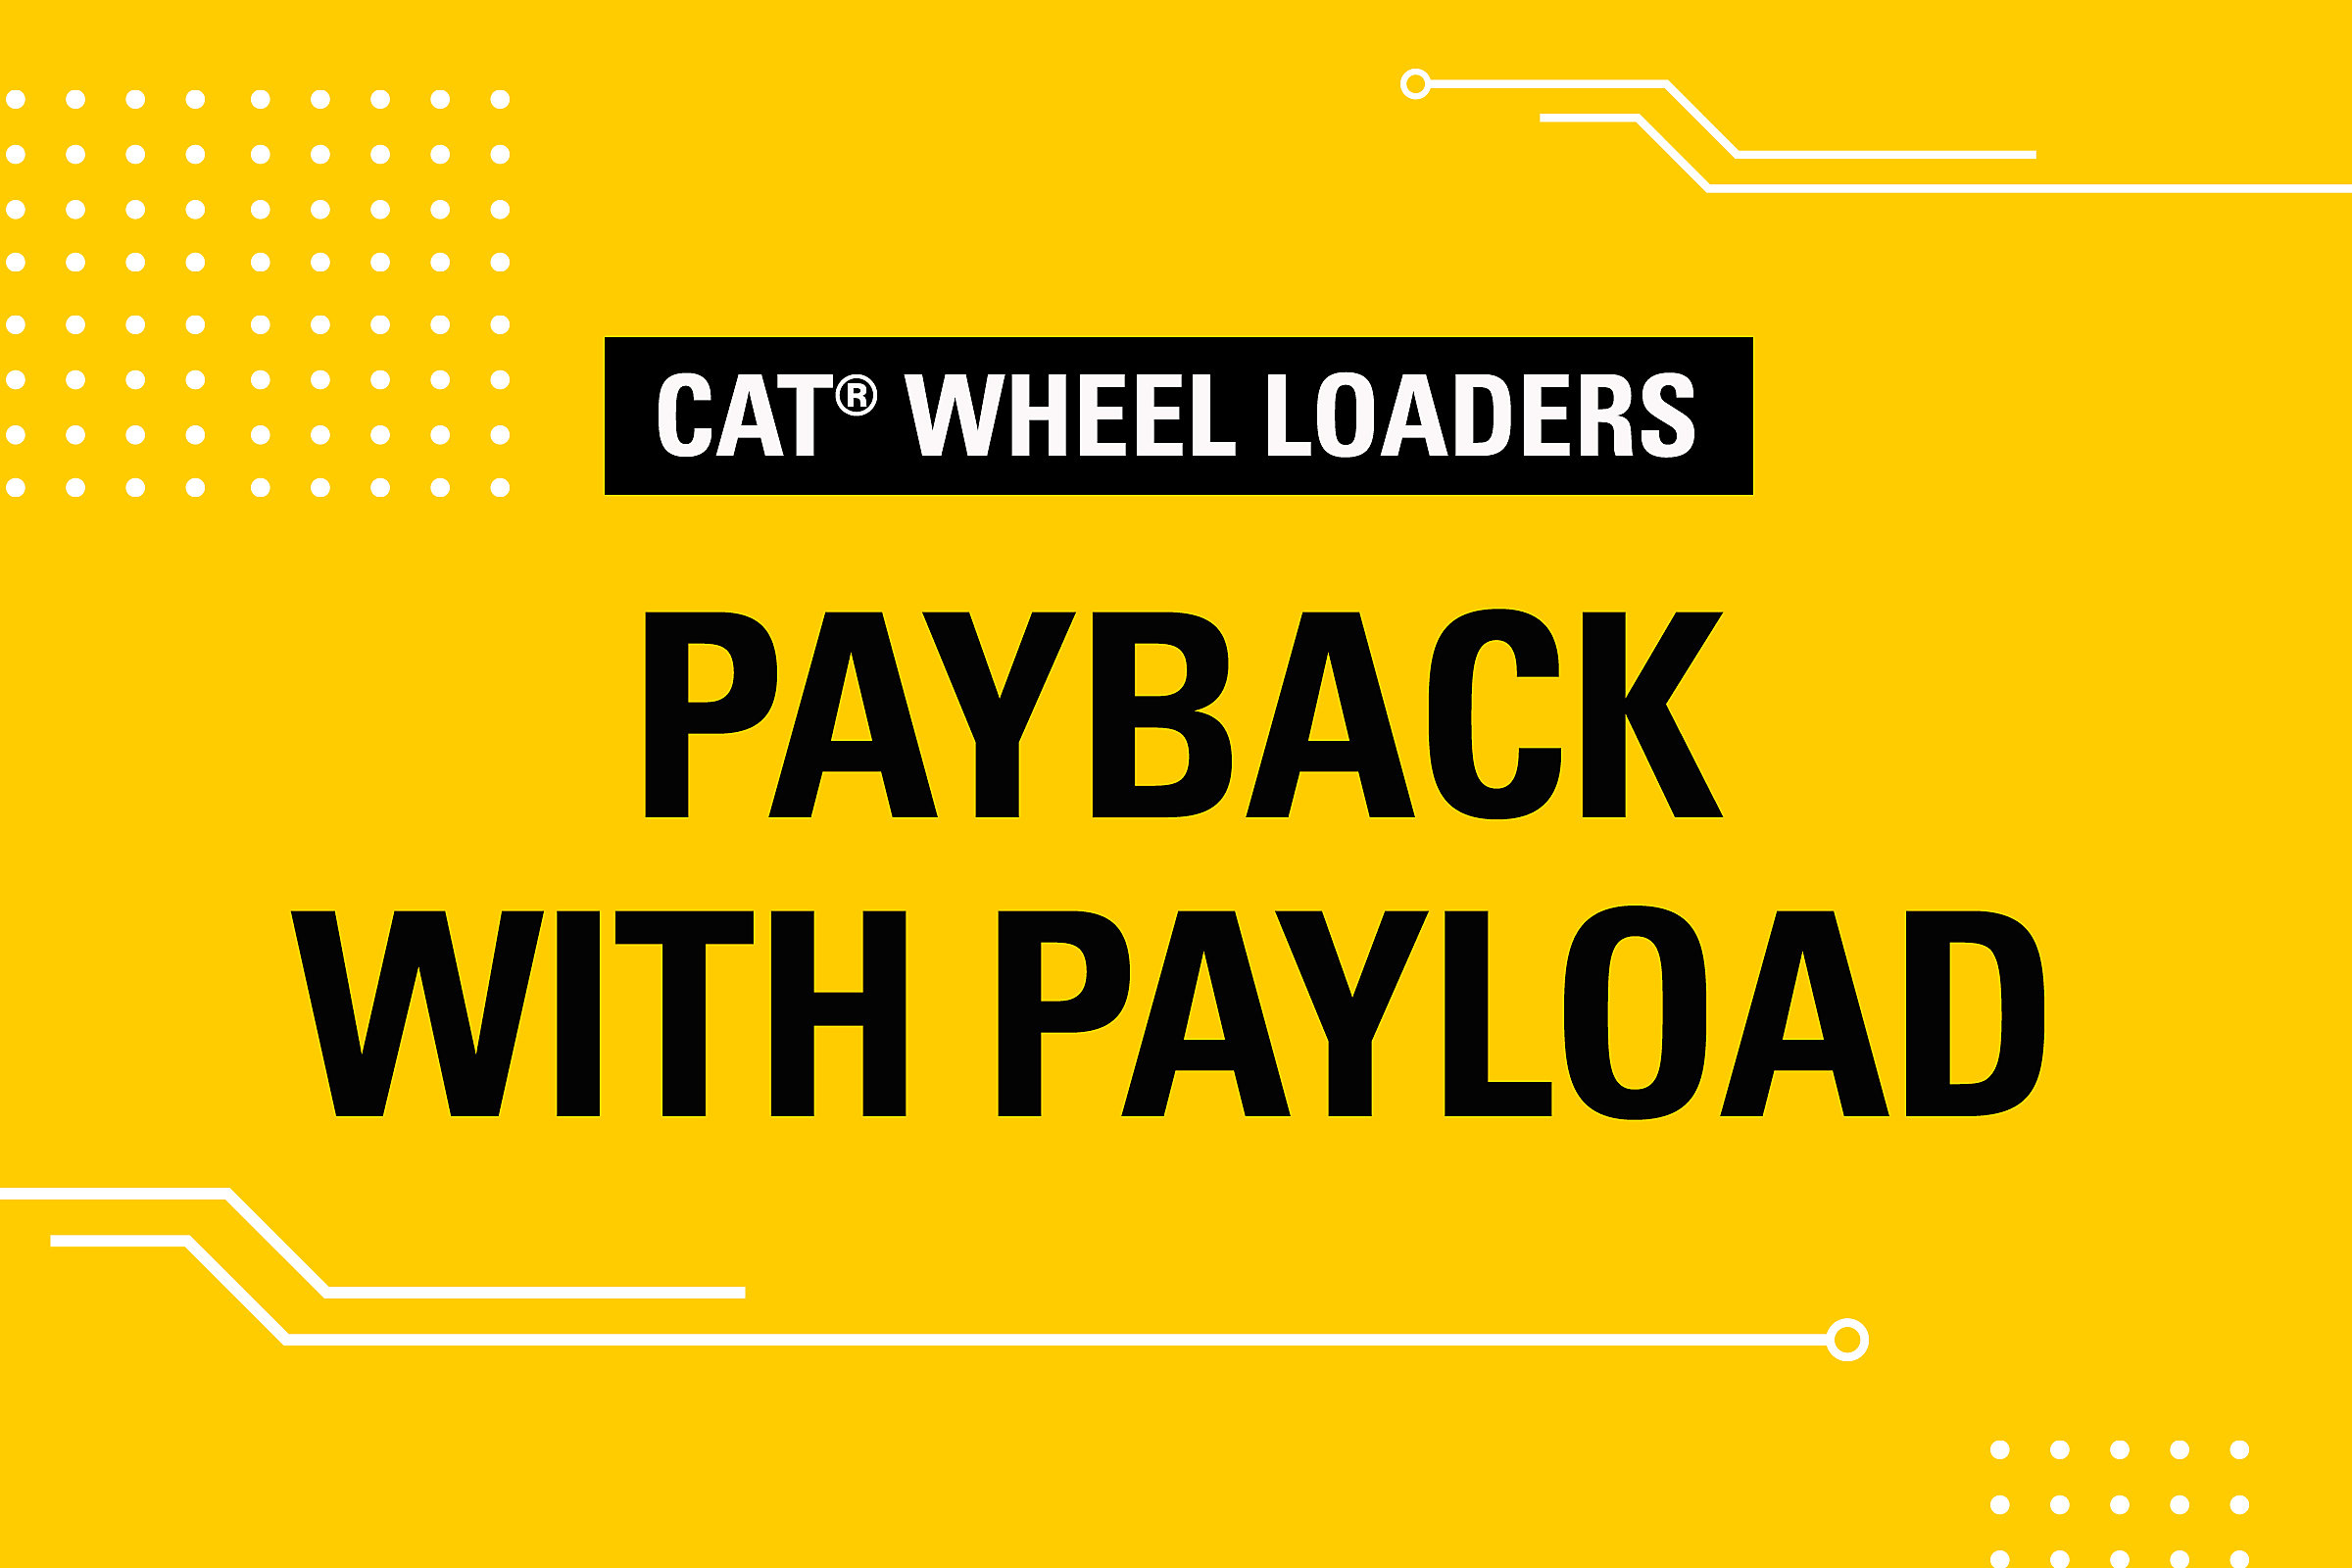 Wheel Loaders Payback with Payload